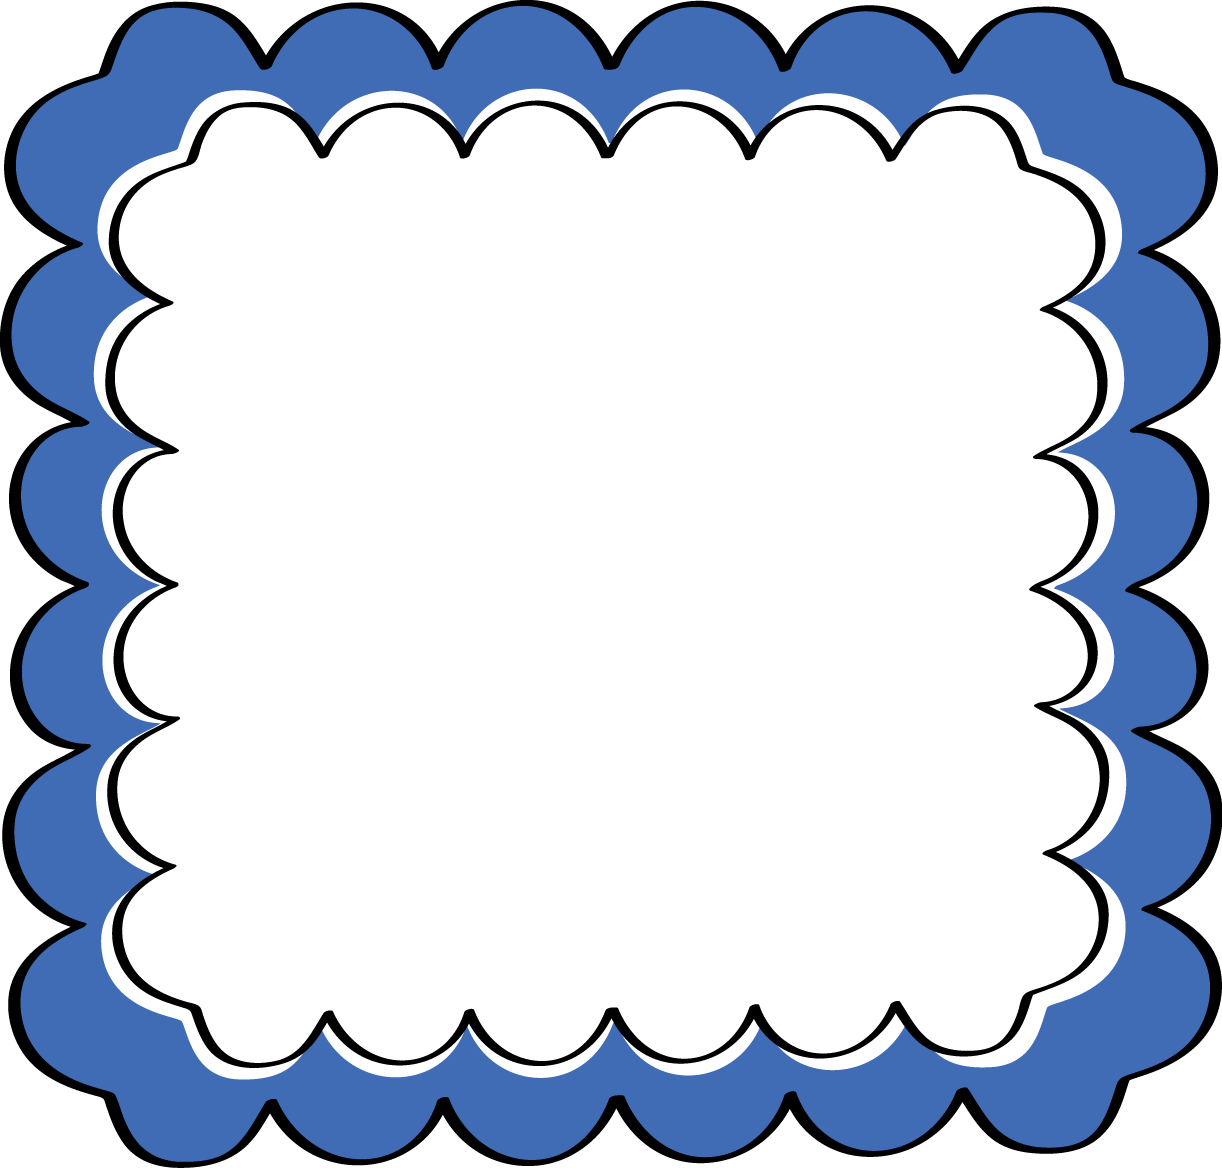 Formal frames and borders. Housekeeping clipart border